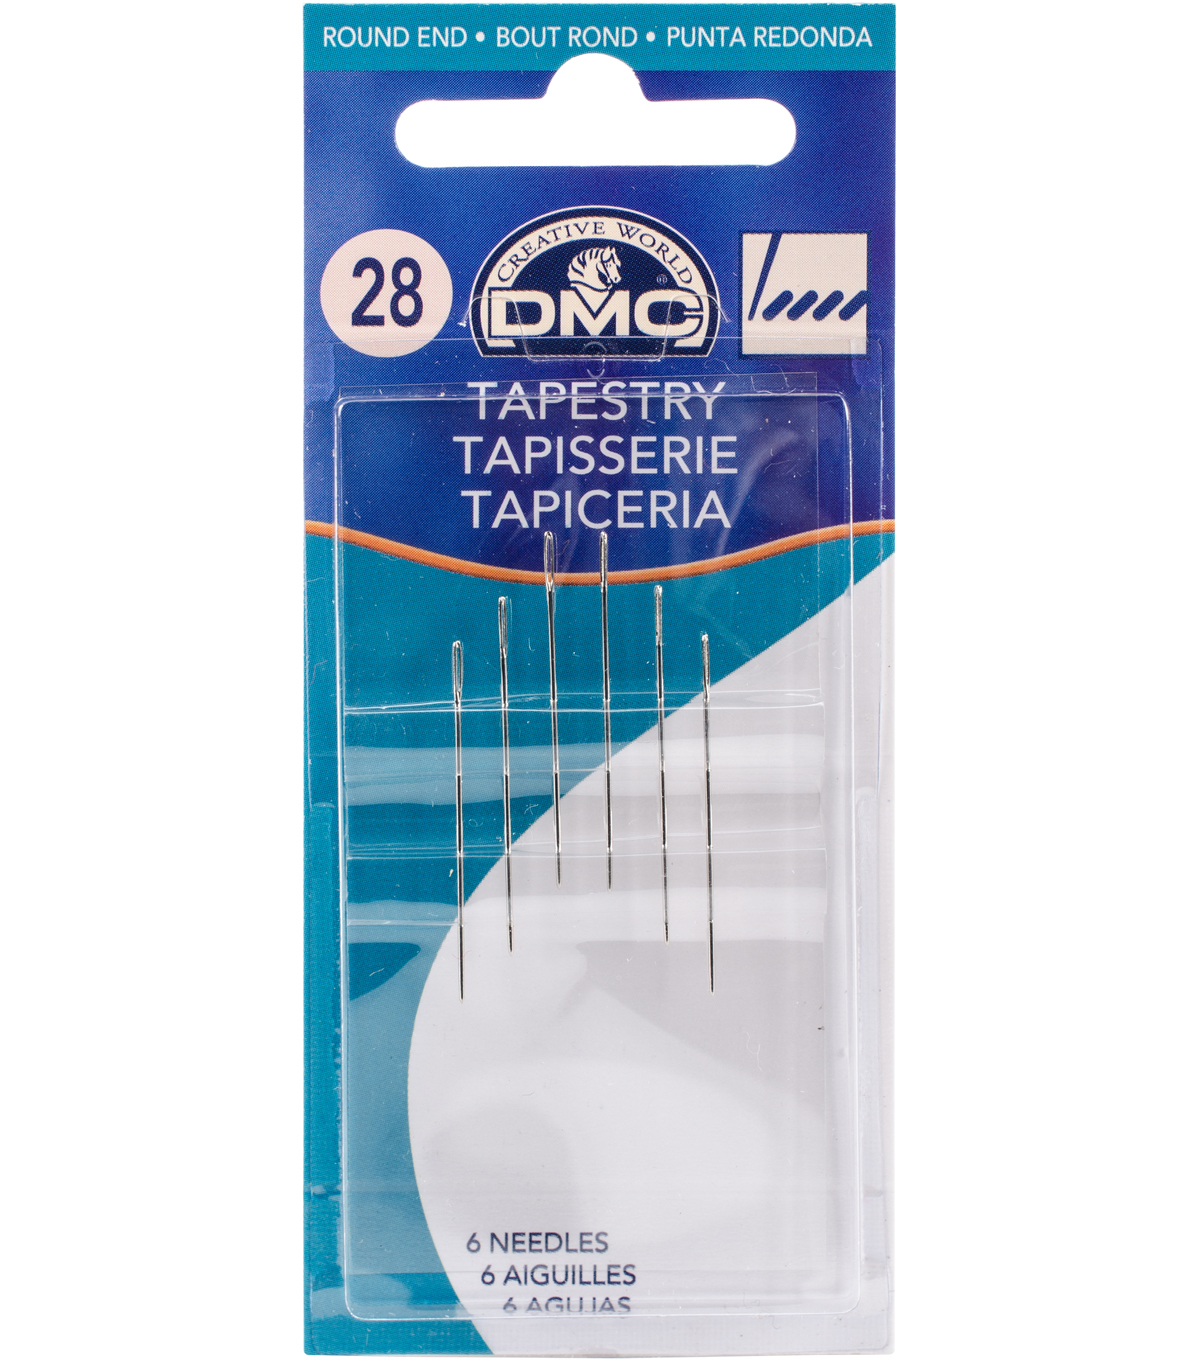 DMC Tapestry Hand Needles Size 28